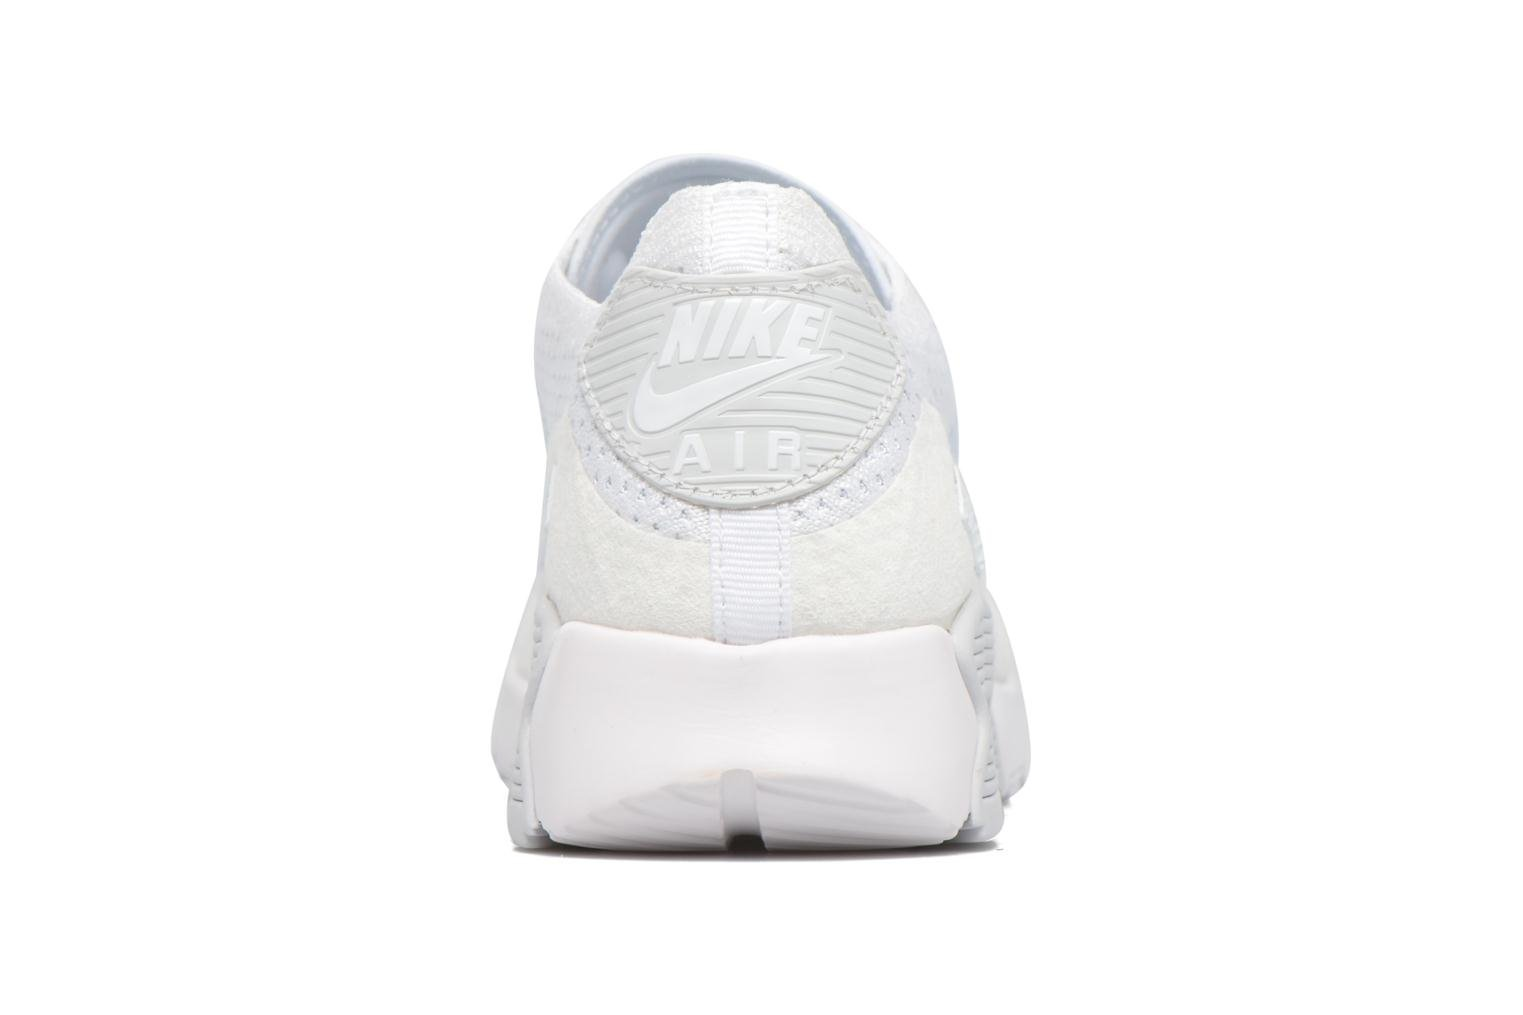 W Air Max 90 Ultra 2.0 Flyknit White/White-Pure Platinum